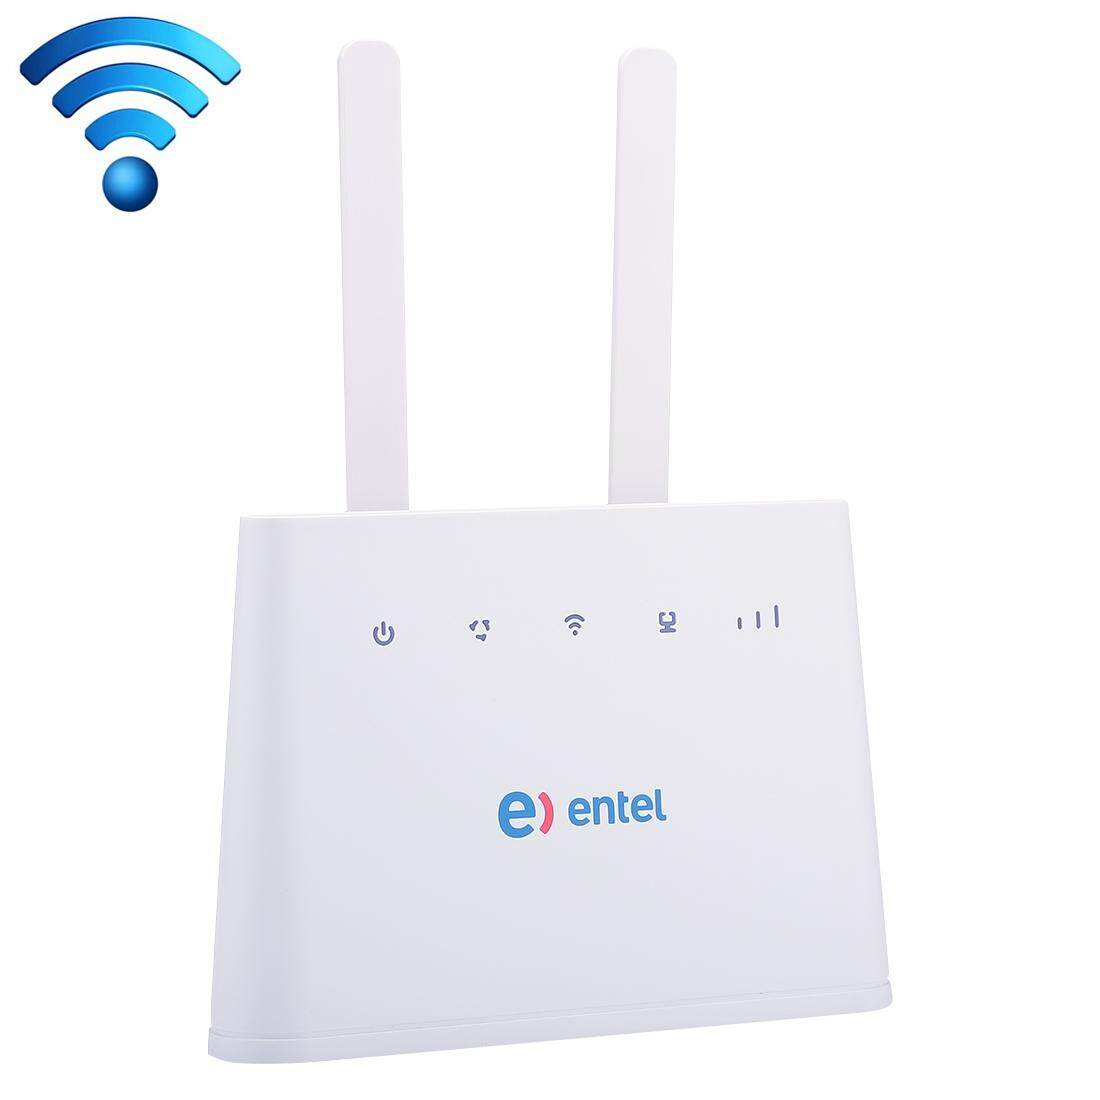 Sell Huawei B315s Cheapest Best Quality My Store B315 4g Lte 150mbps Home Router Modem Wifi Wireless Hotspot Myr 241